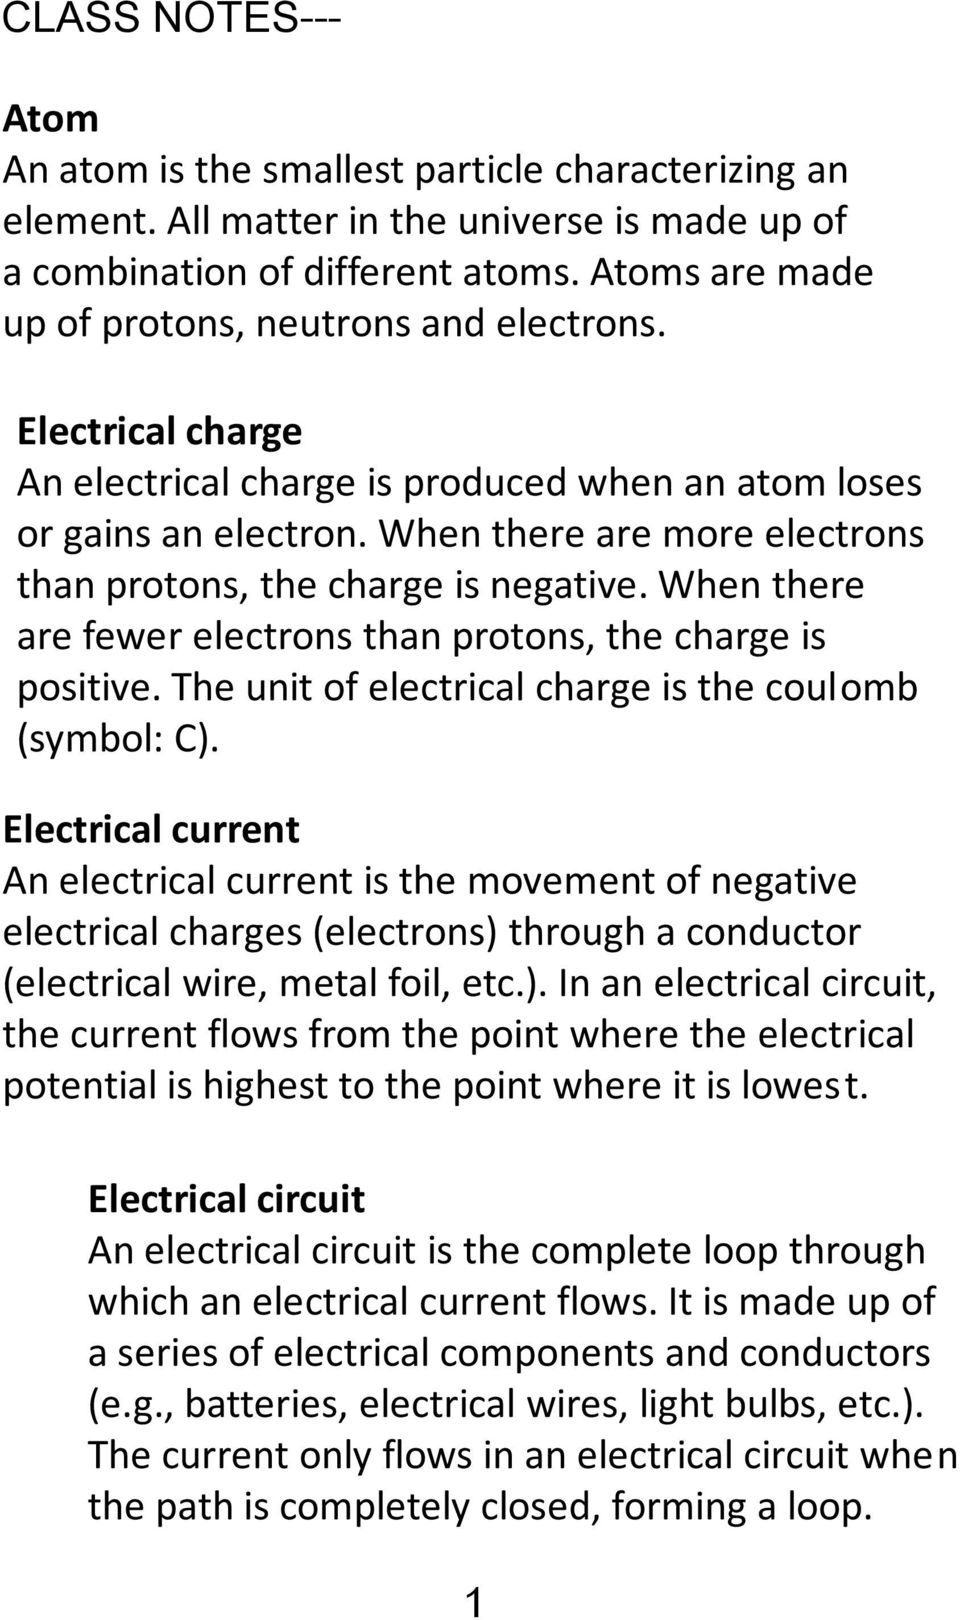 ELECTRICITY UNIT SCIENCE AND TECHNOLGY- CYCLE 3 NAME GROUP